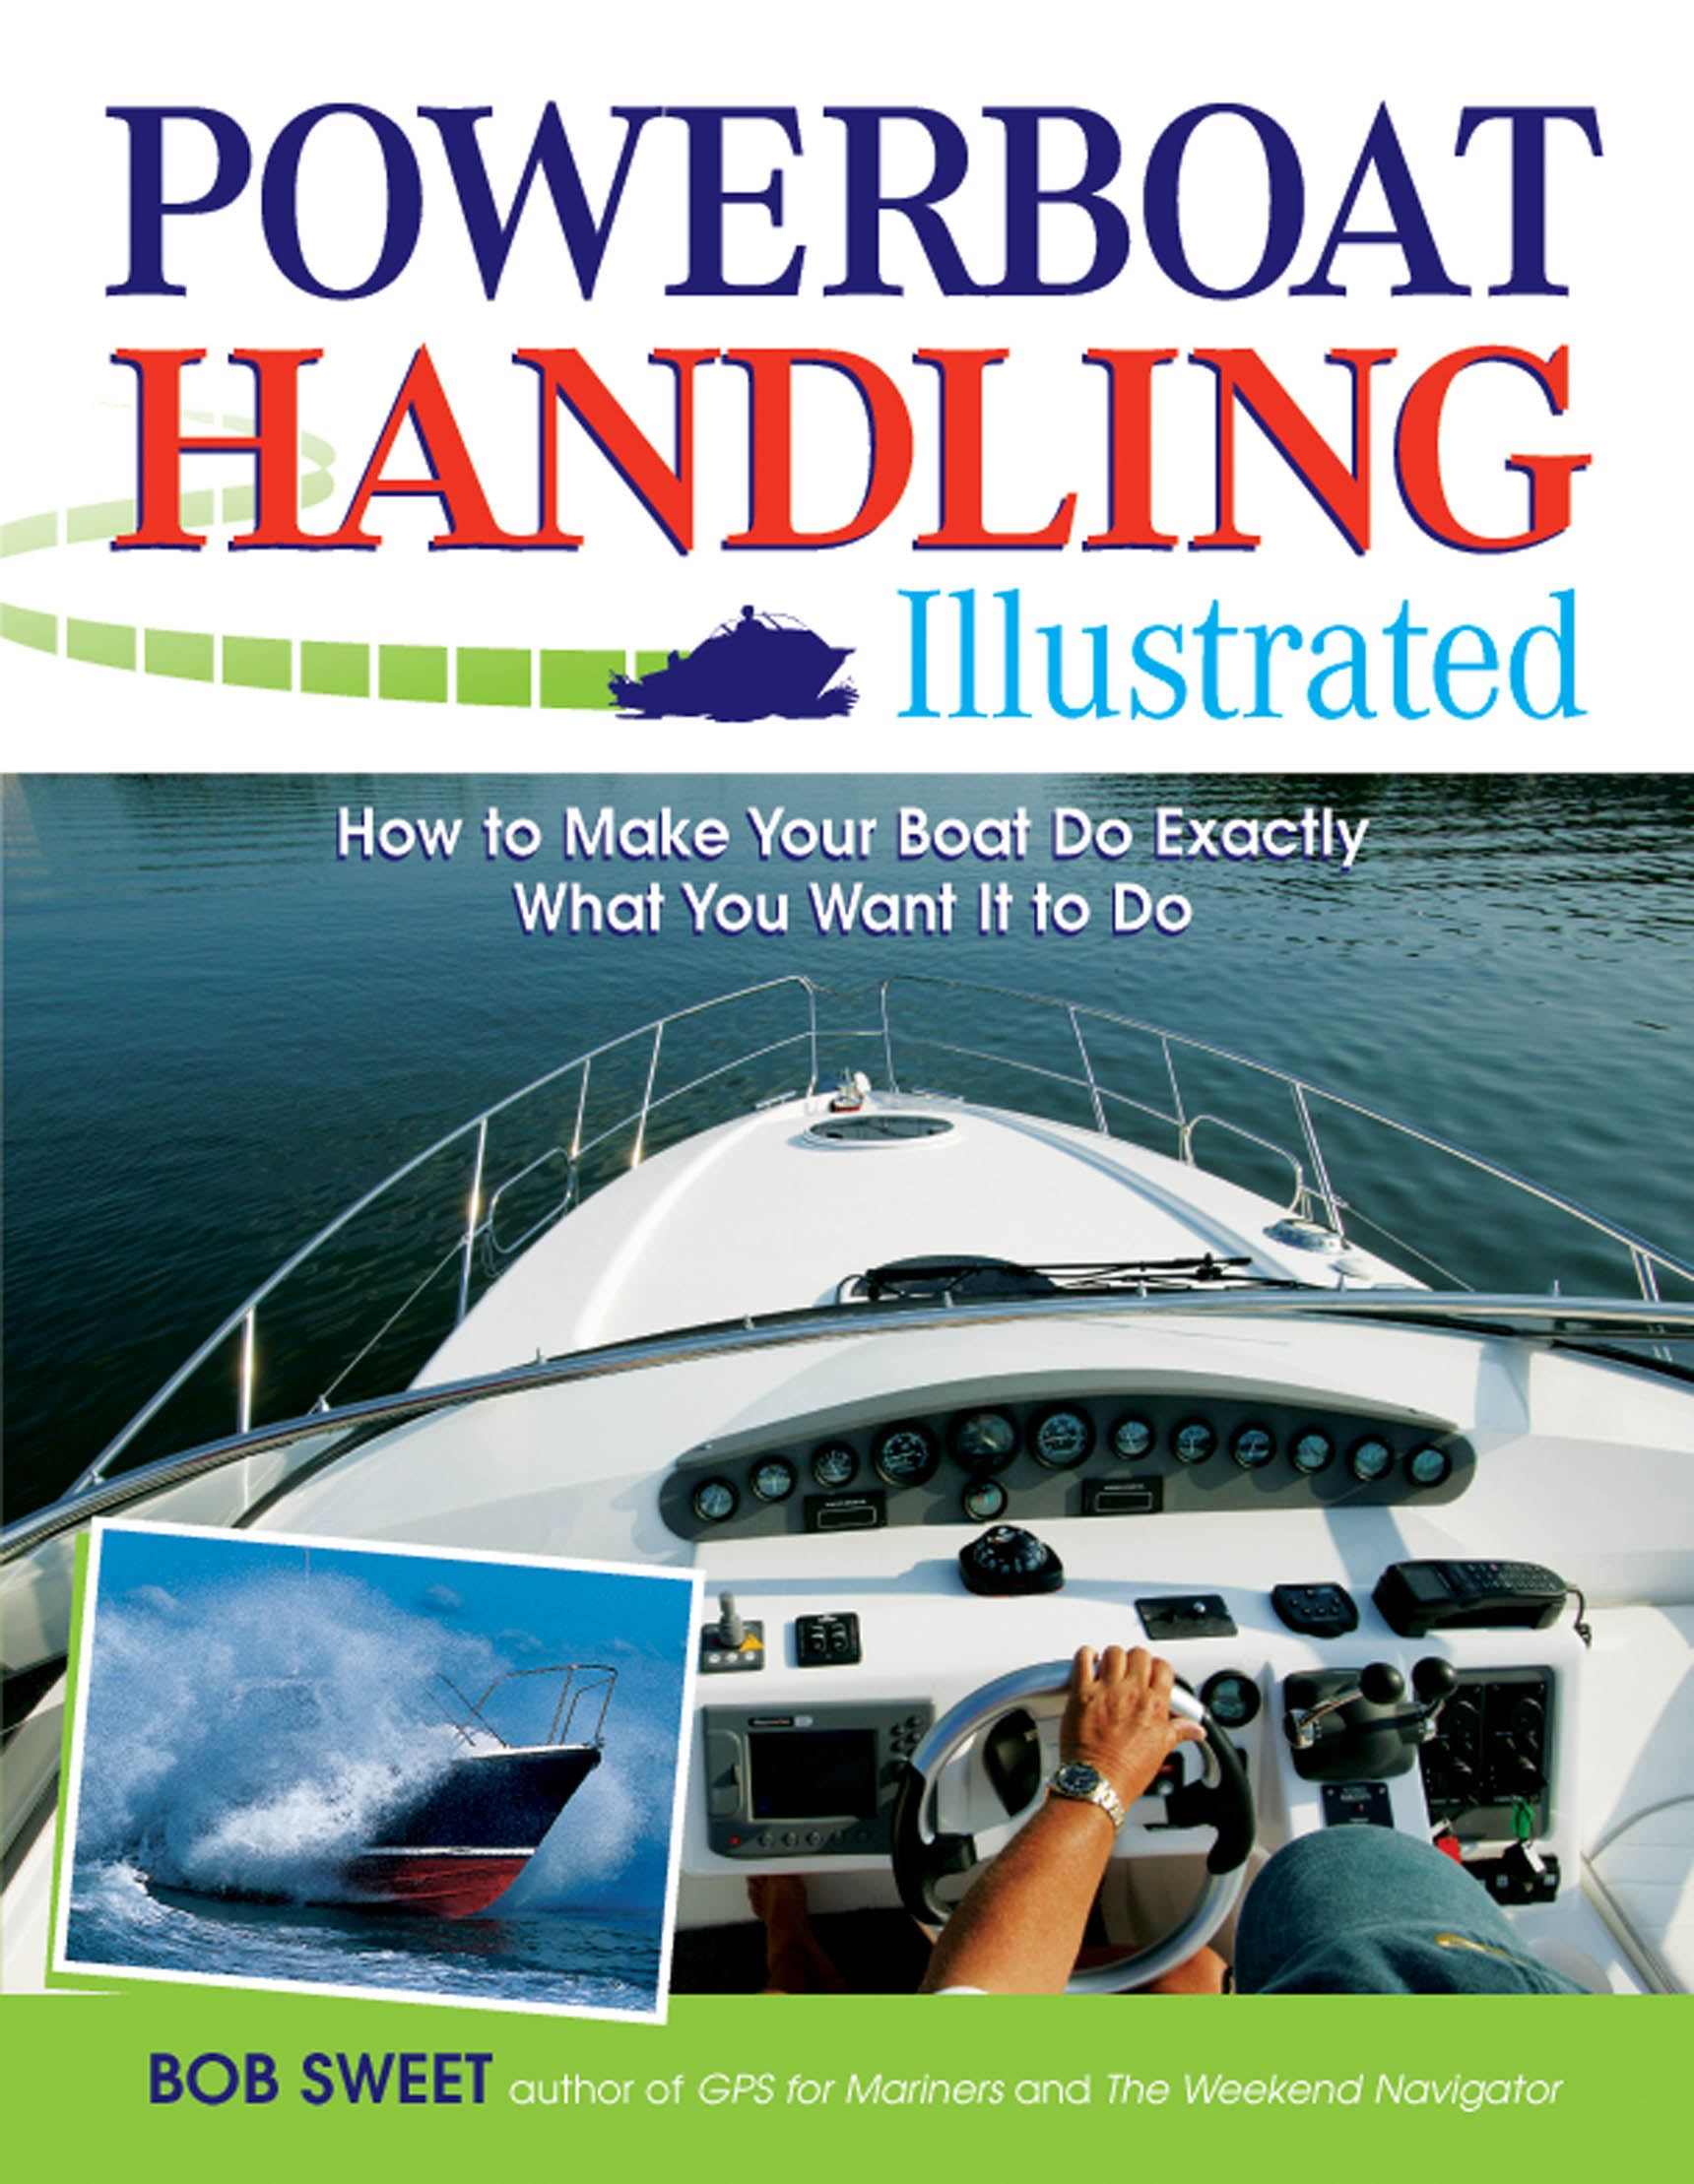 Powerboat Handling Illustrated : How to Make Your Boat Do Exactly What You Want It to Do